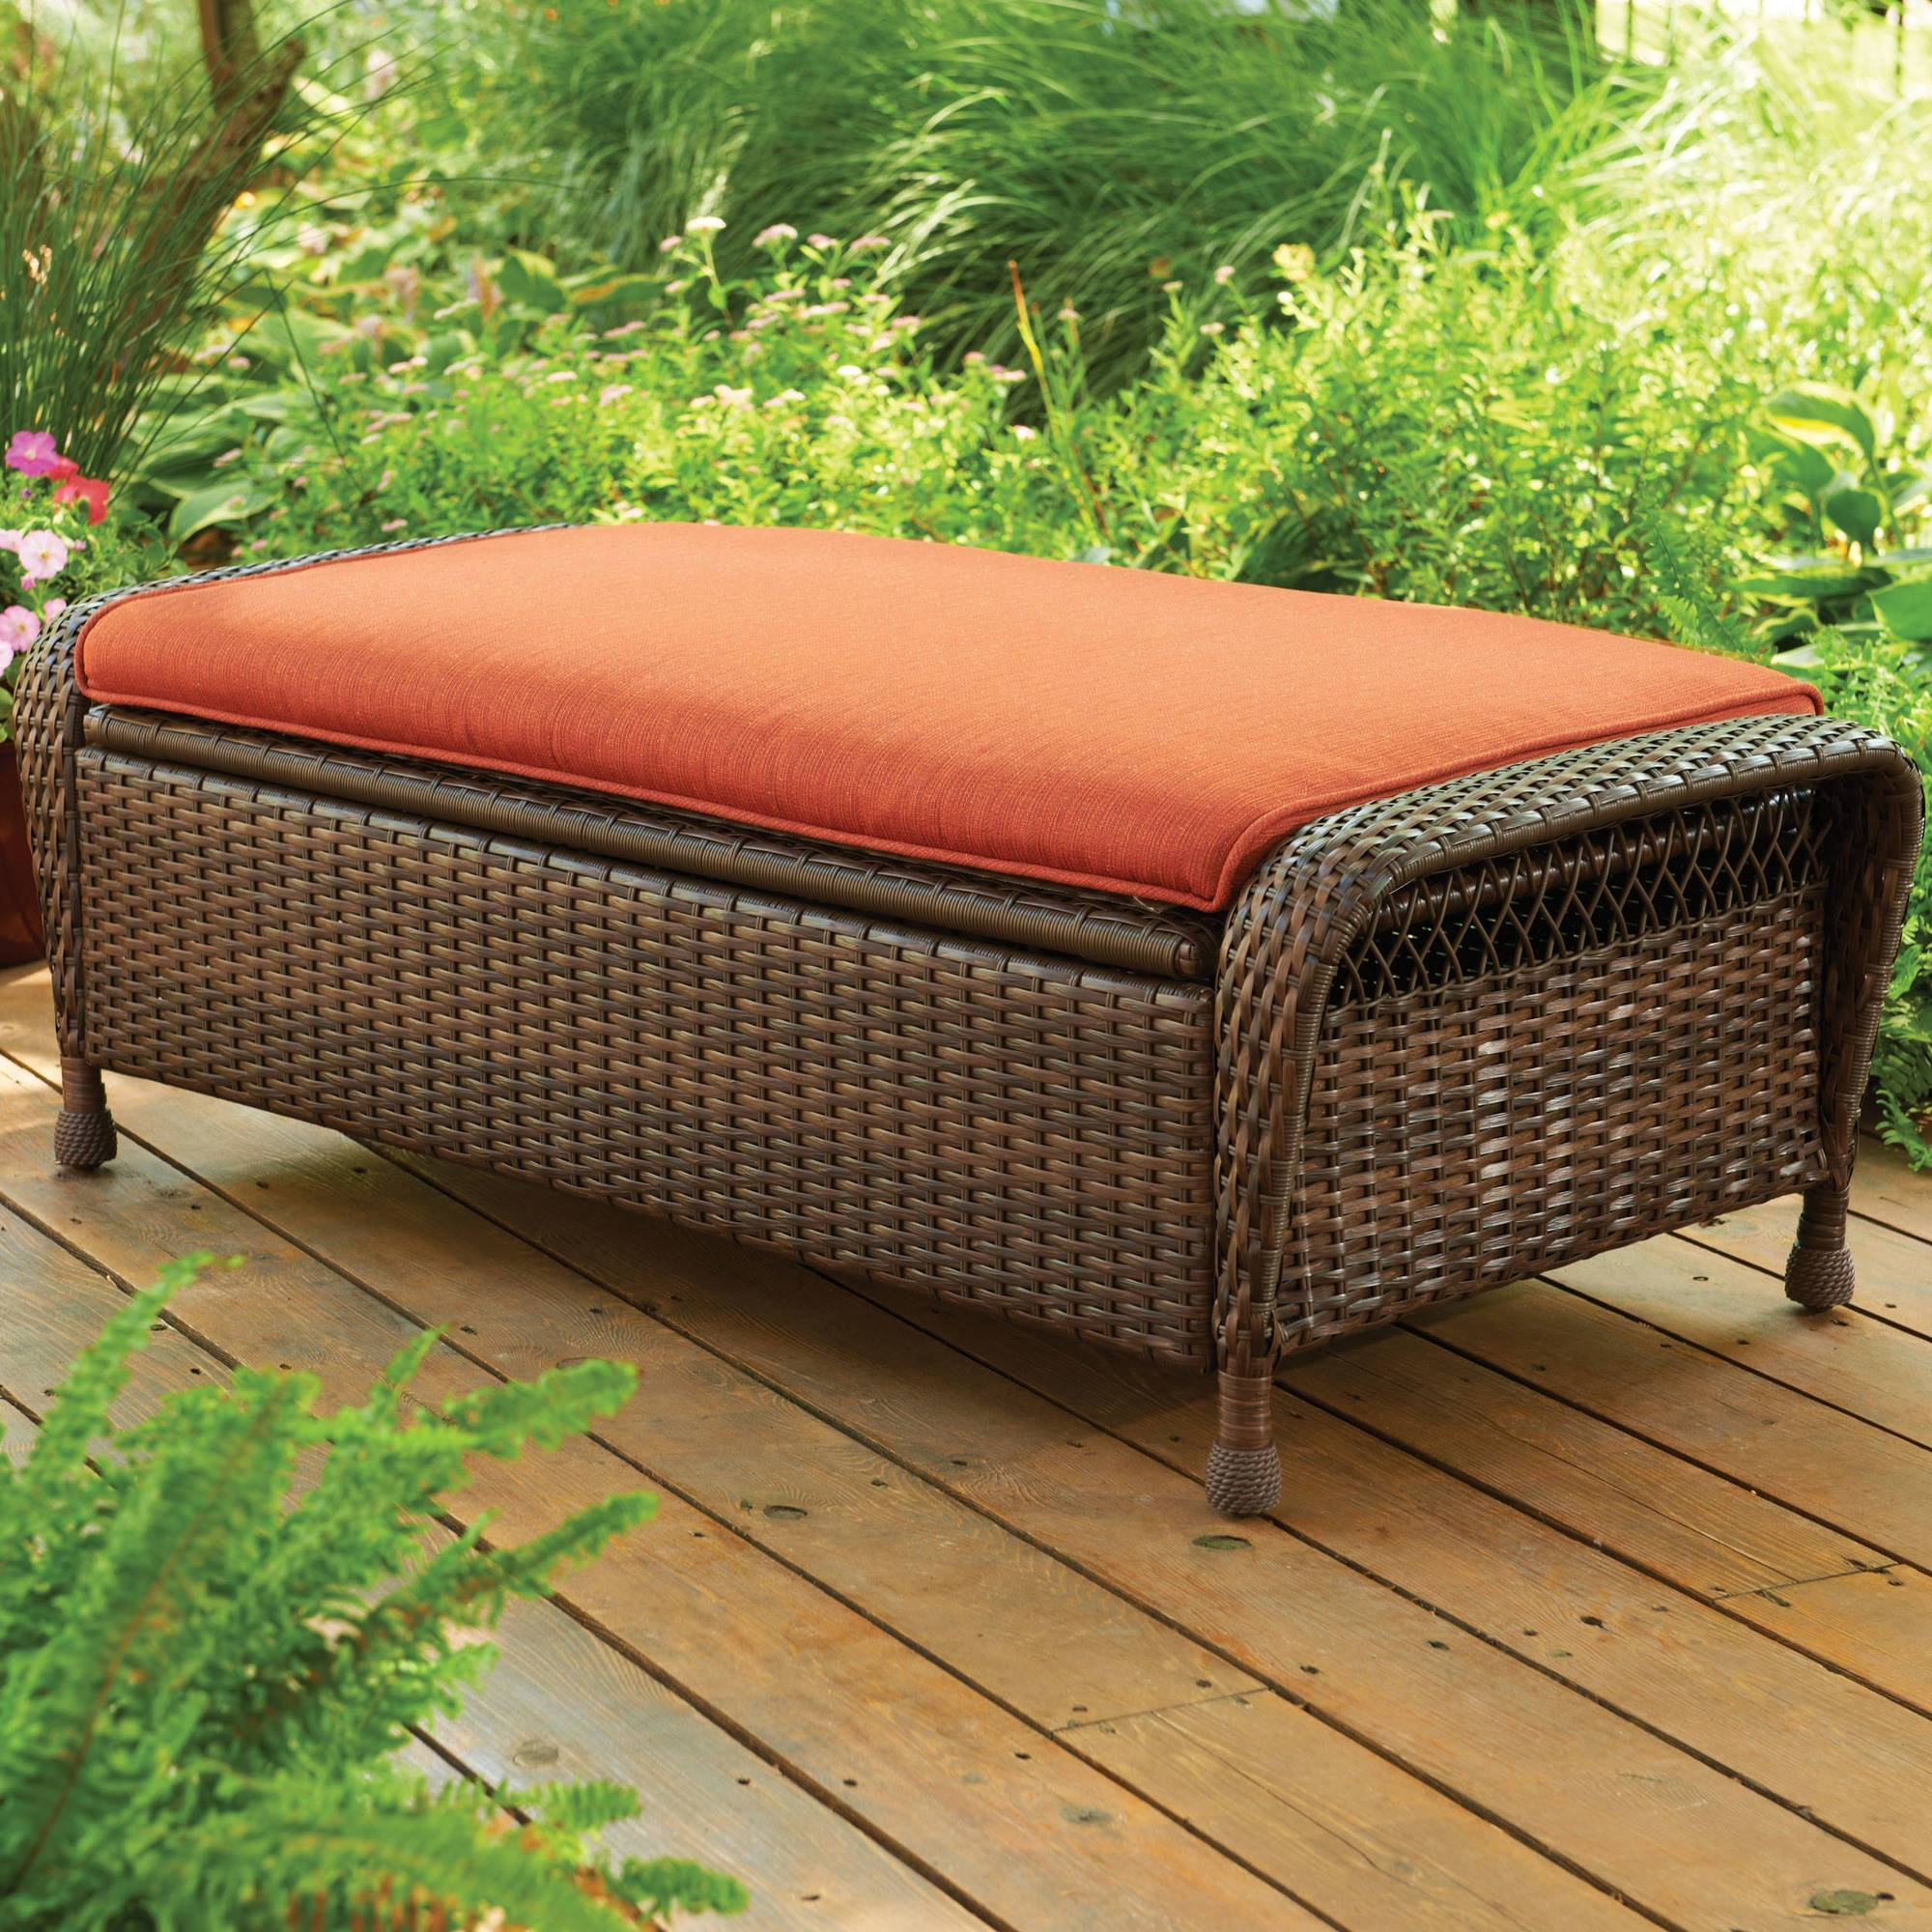 Patio Furniture - Walmart with regard to Outdoor Sofas and Chairs (Image 15 of 15)